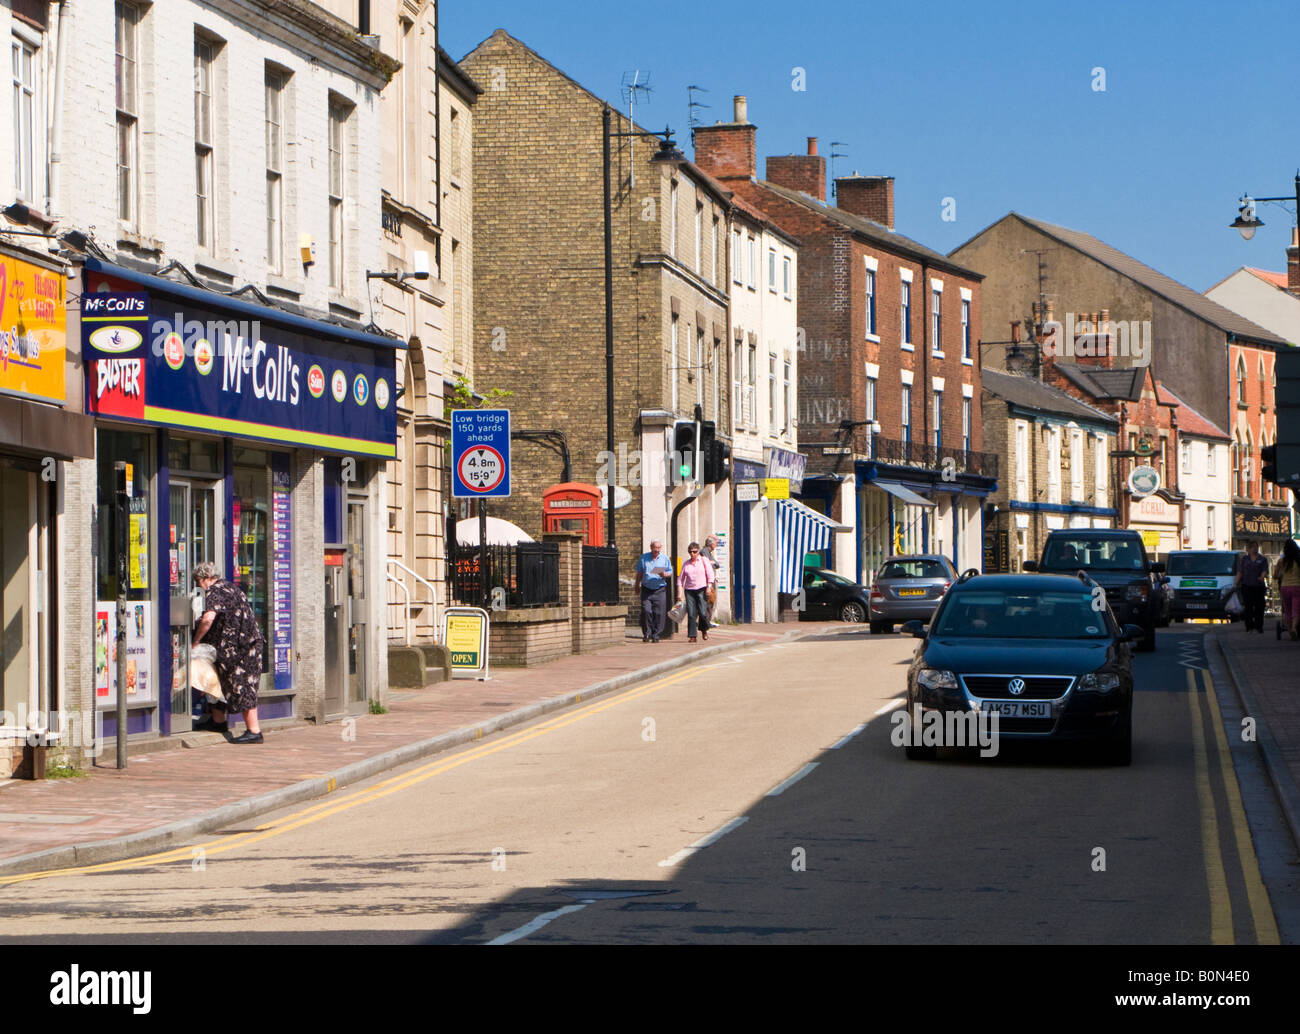 Town Centre at Market Rasen, Lincolnshire, UK Stock Photo ...